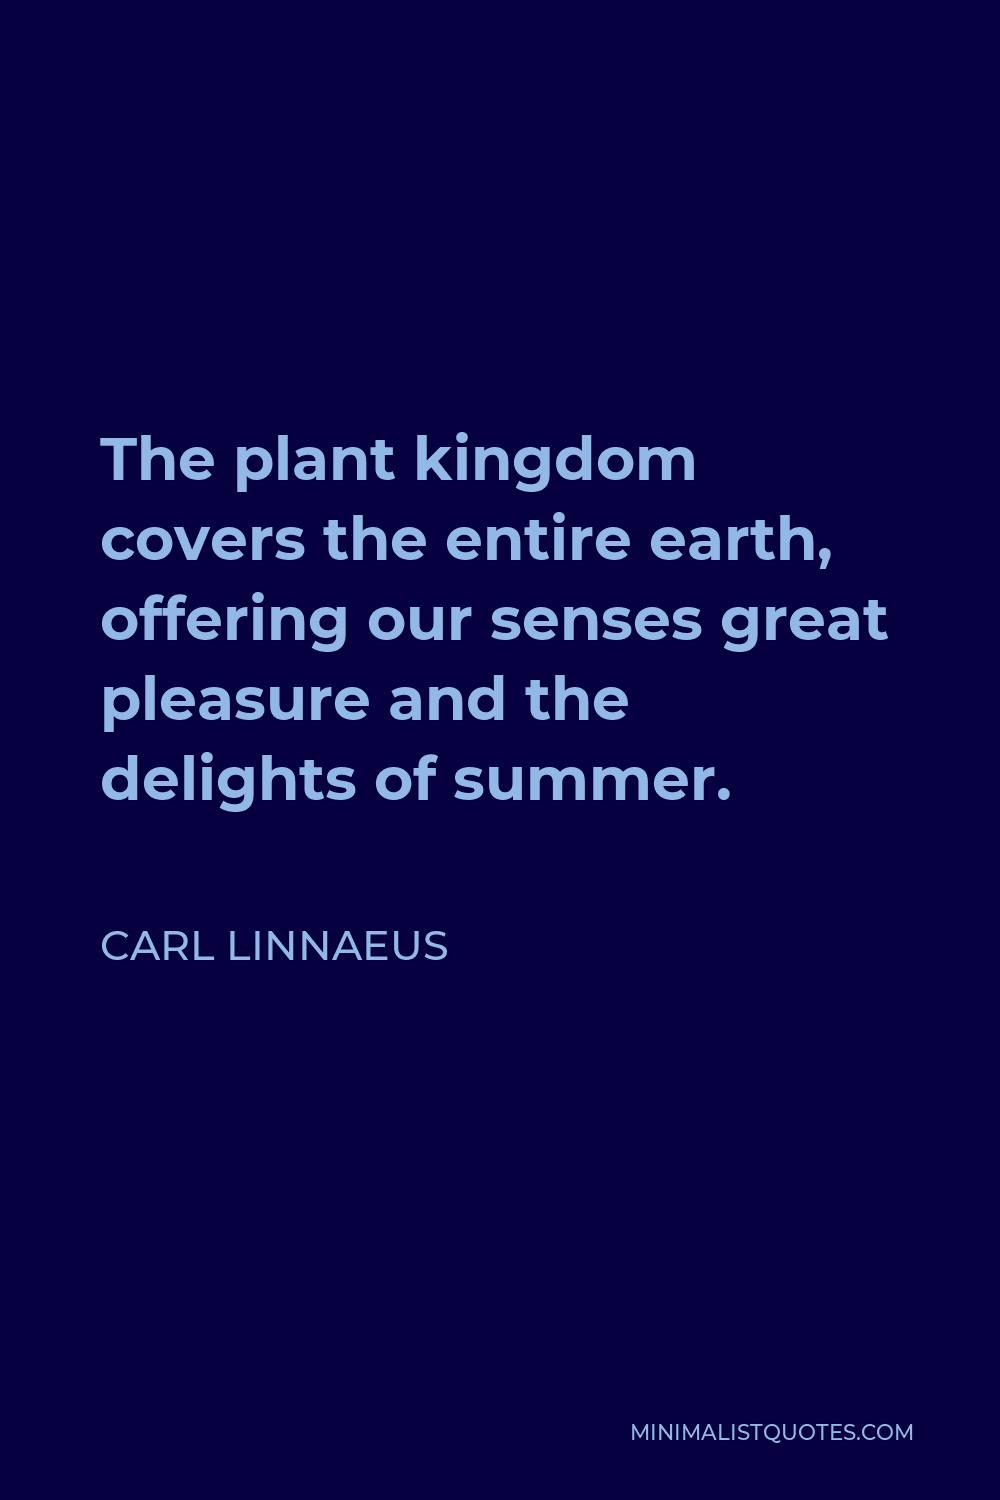 Carl Linnaeus Quote - The plant kingdom covers the entire earth, offering our senses great pleasure and the delights of summer.